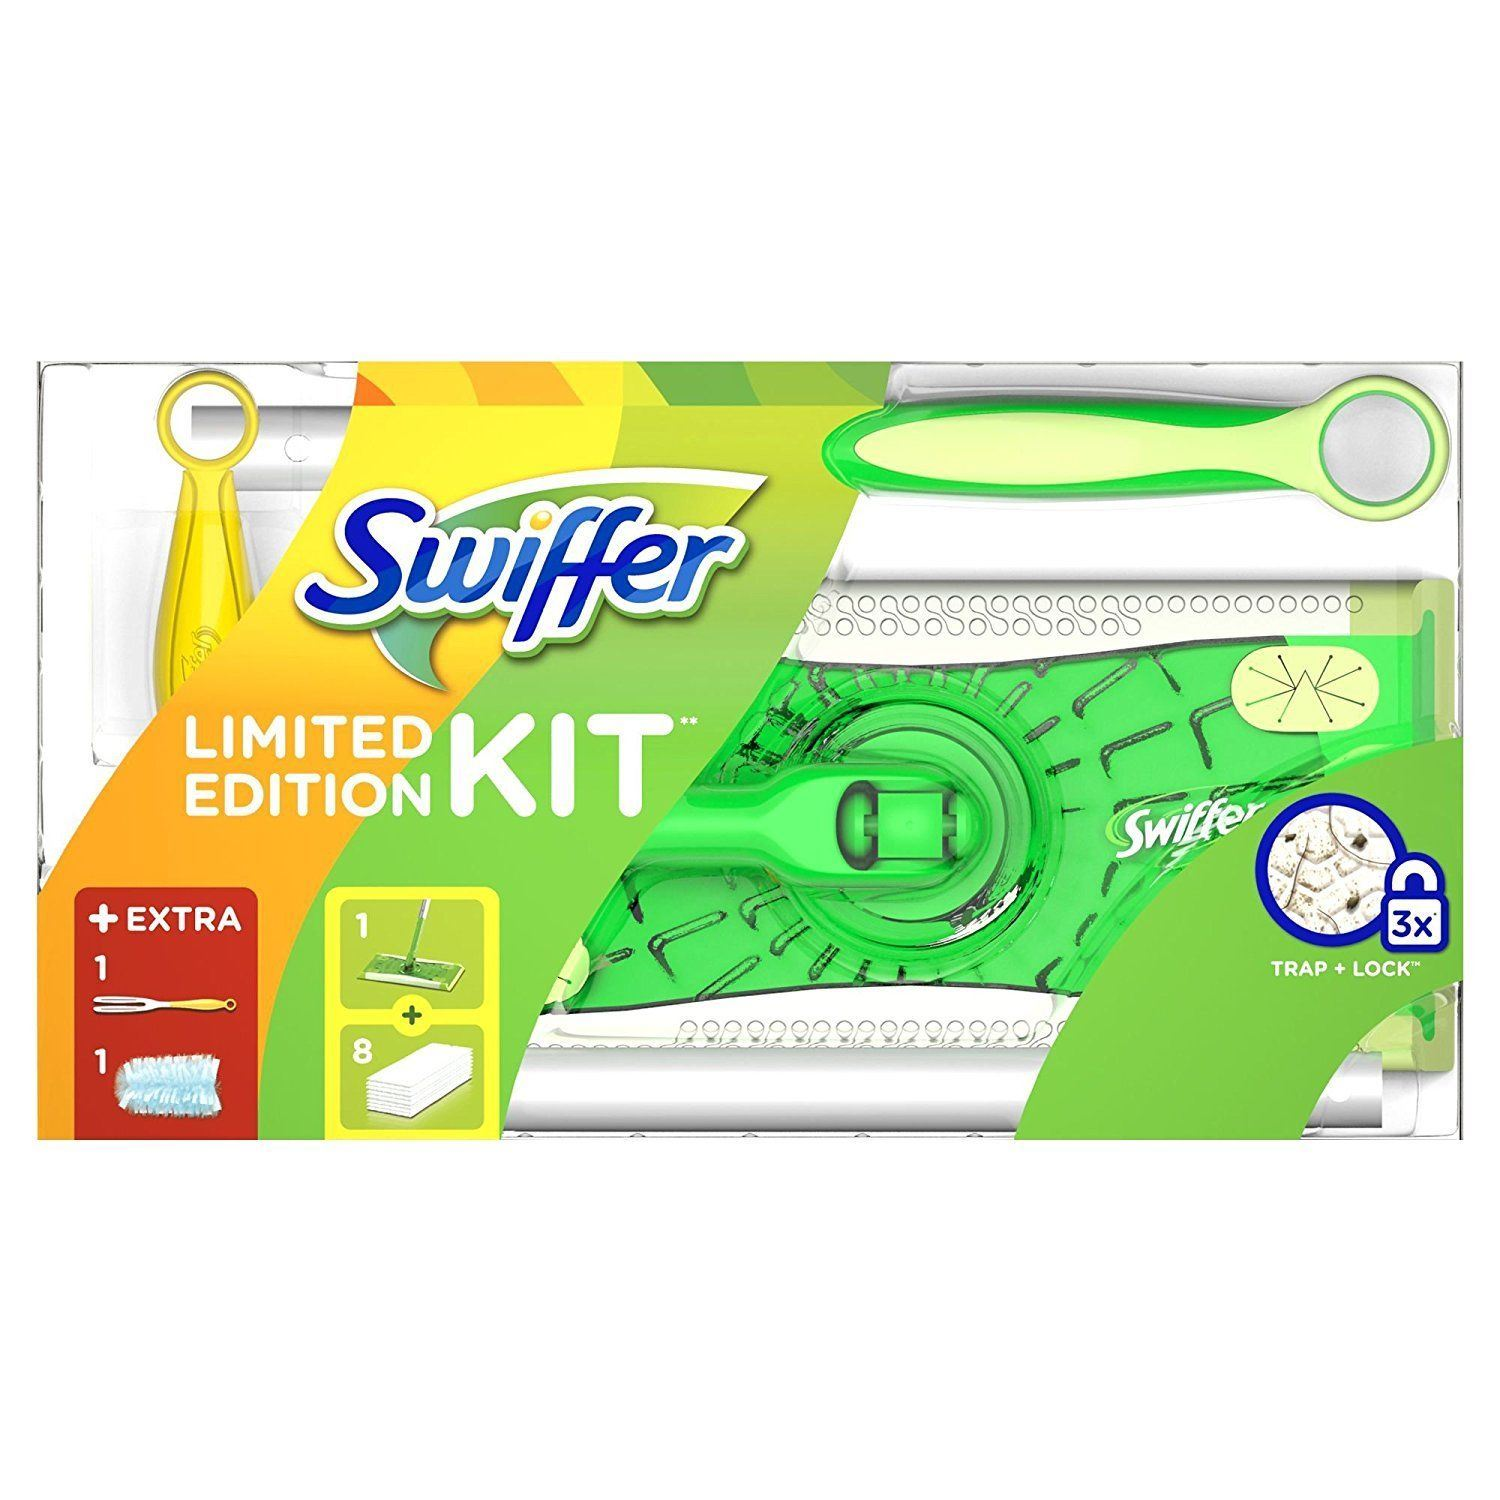 With a one-two cleaning punch, Swiffer Sweeper Floor Sweeper Mop is designed to sweep and mop your floors. Thick dry sweeping cloths conform to the surface of your floors and grout lines, trapping and locking dirt, dust, hair and allergens.